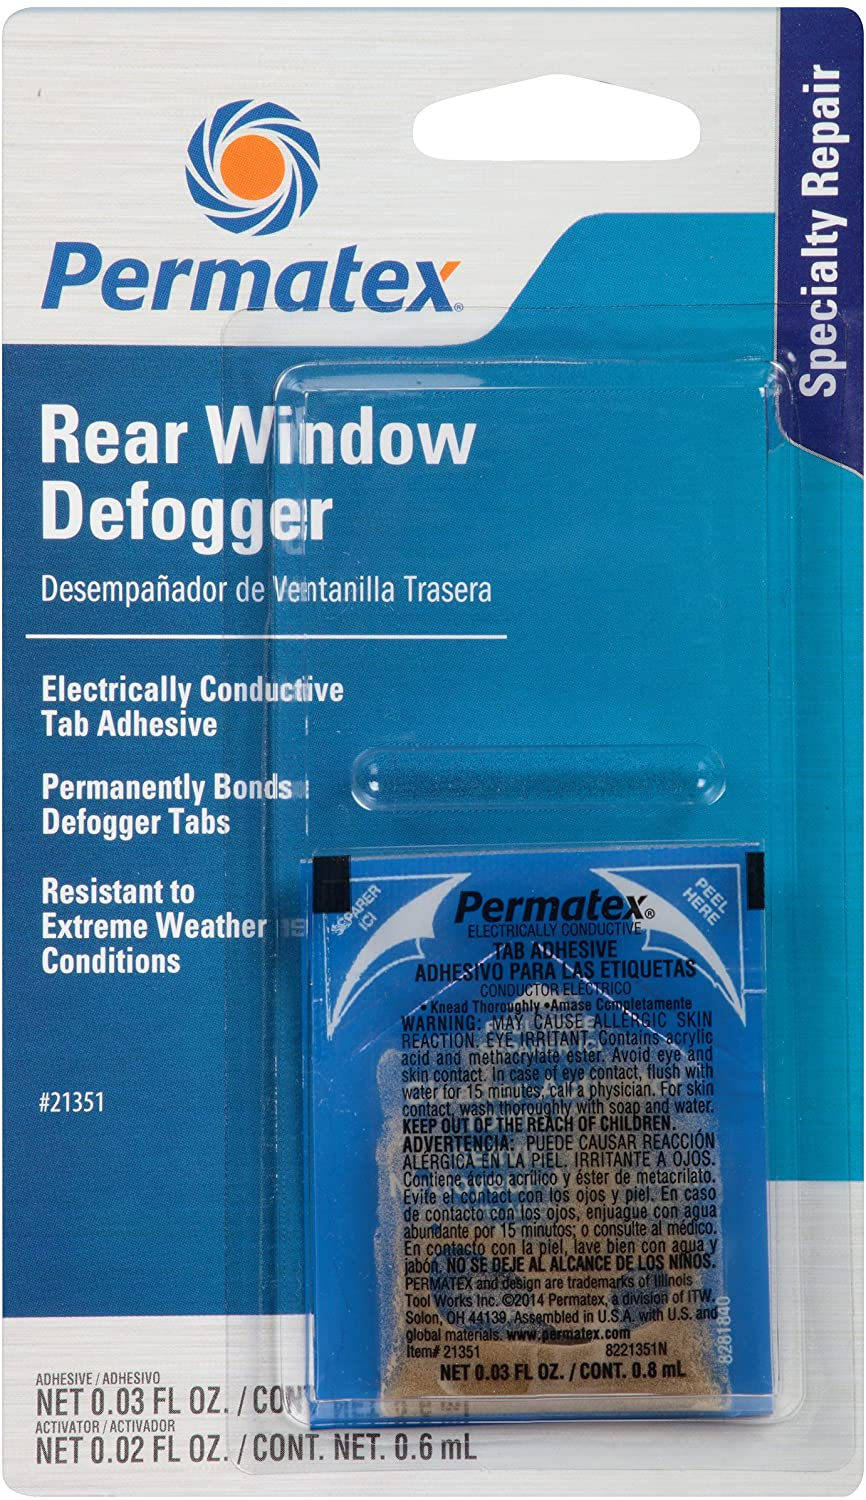 Permatex 21351 Electrically Conductive Rear Window Defogger Tab Adhesive, Single Unit